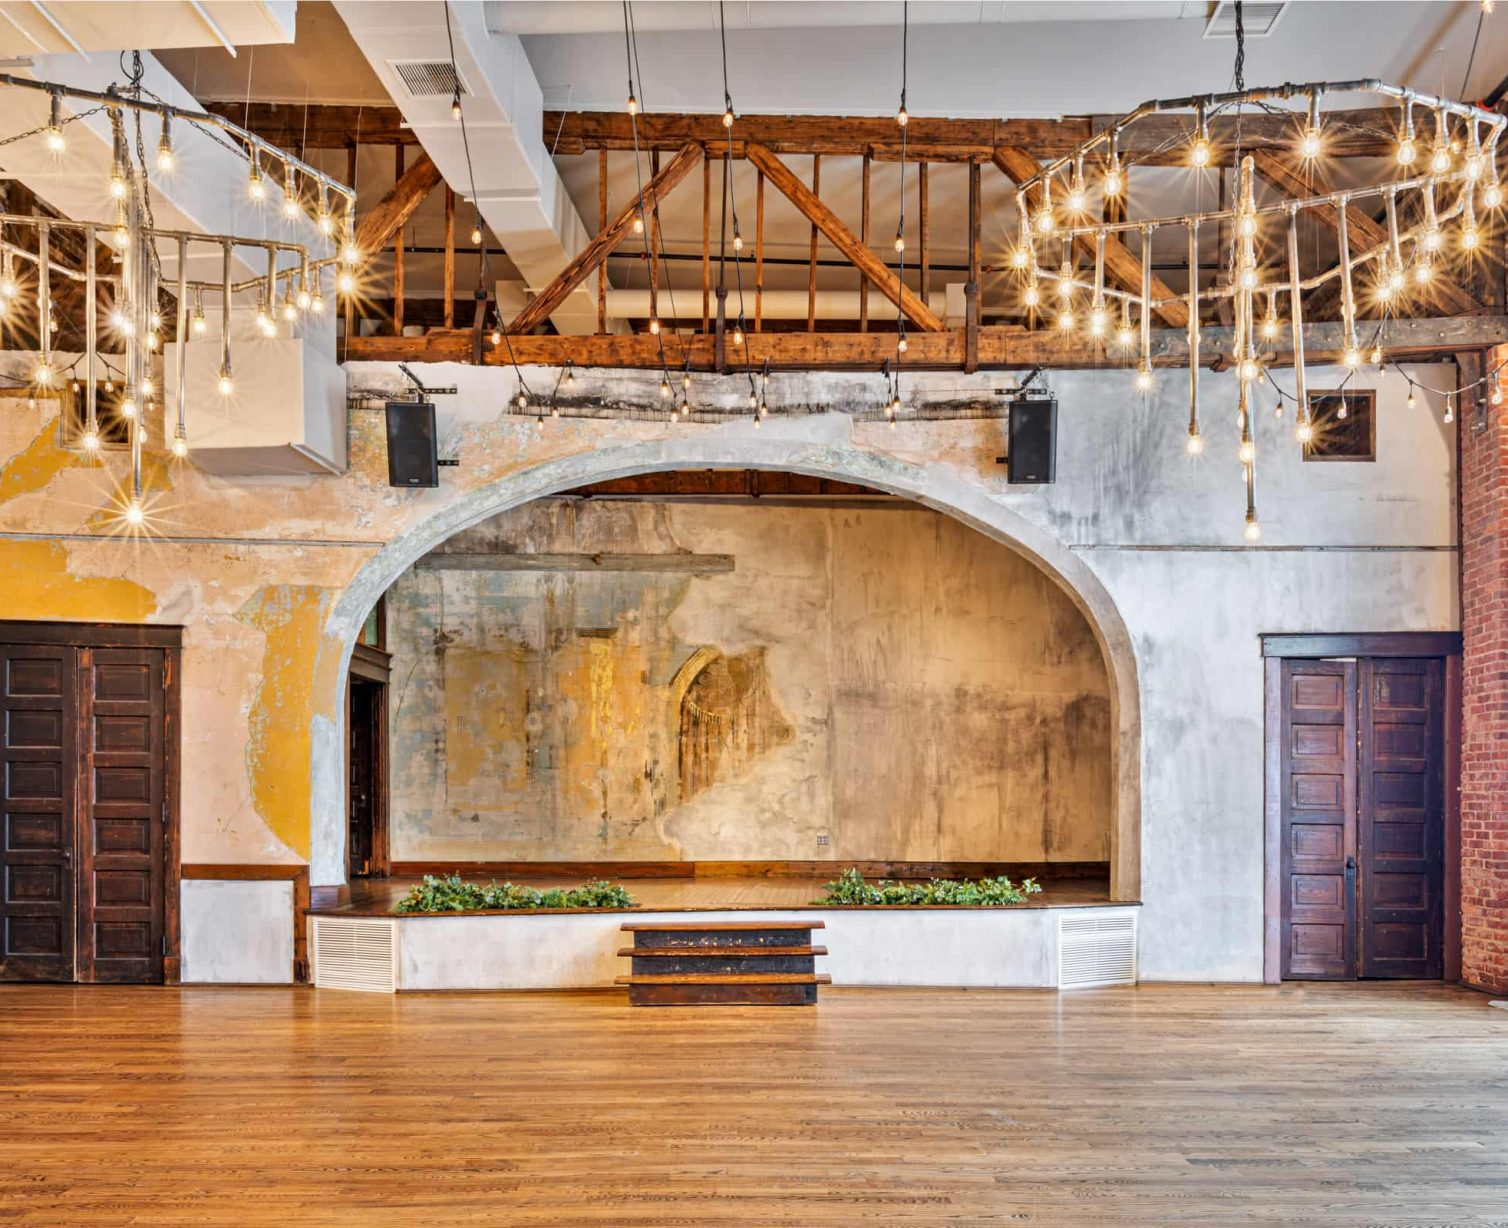 The Grand Hamilton Theater with its high ceilings and large windows fill the space with ample natural light